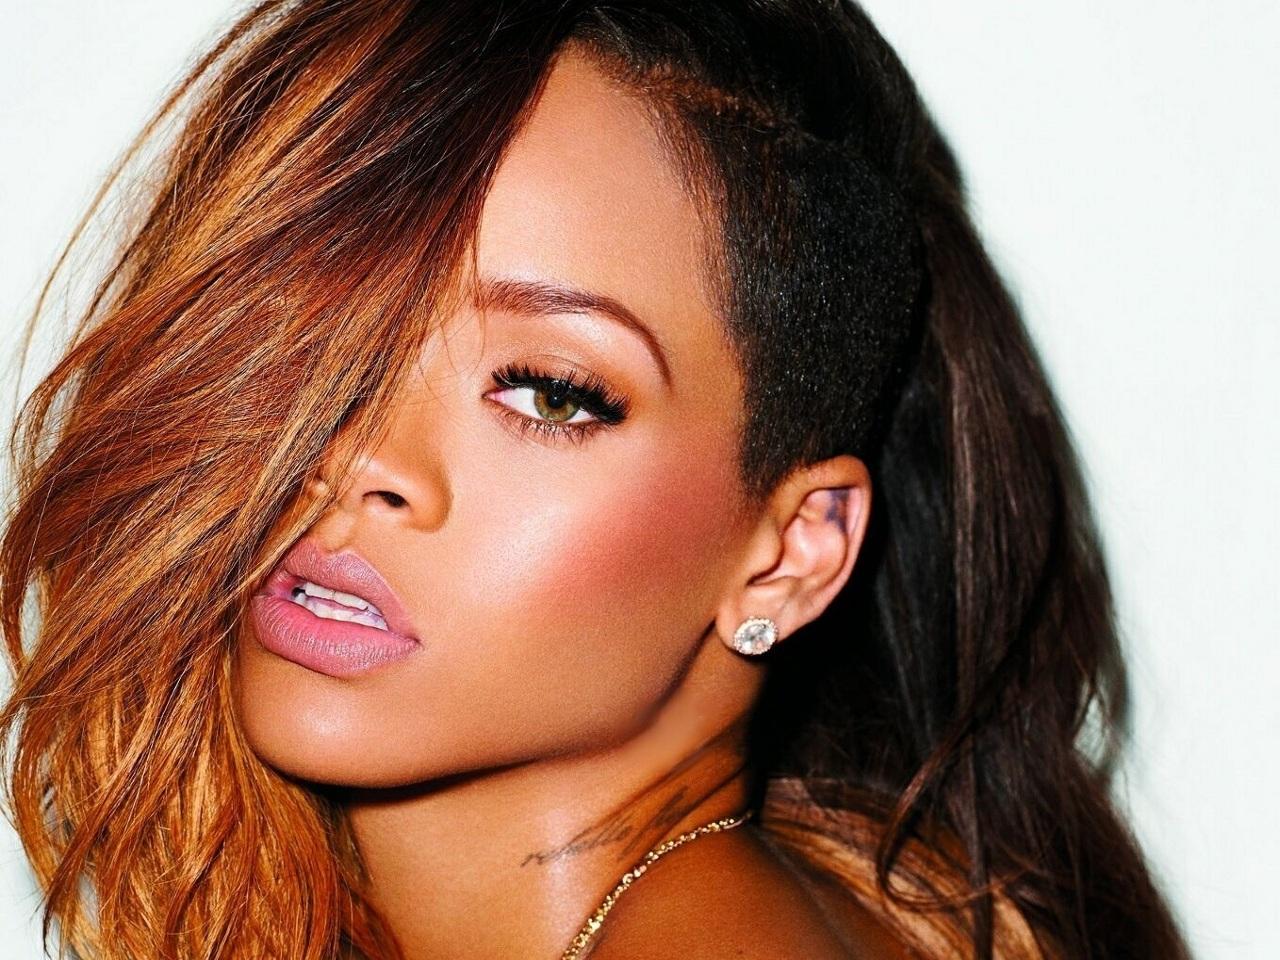 50 Interesting Facts About Rihanna